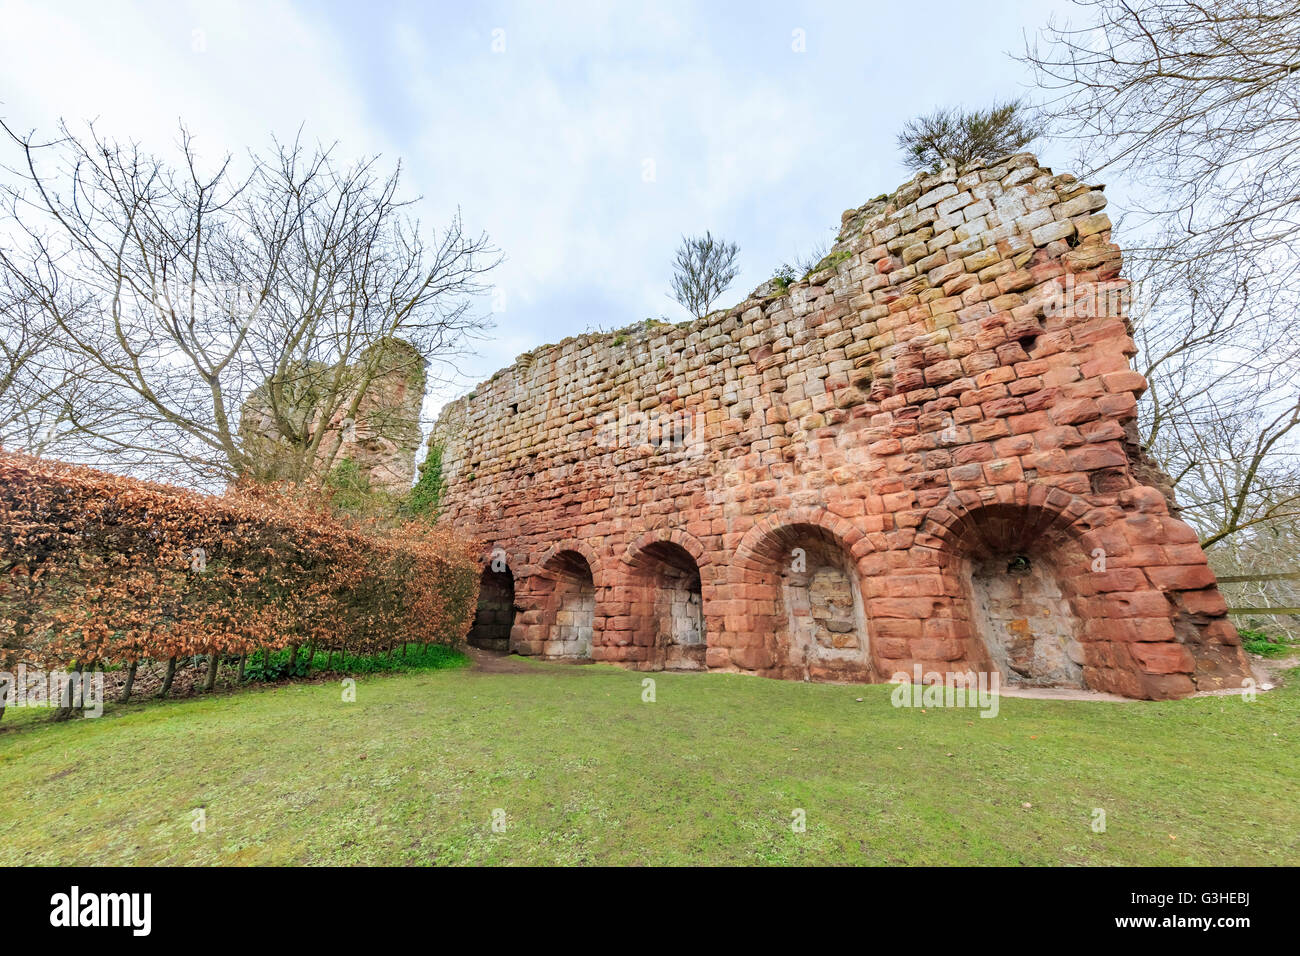 The historical Rosslyn Castle at Edinburgh, Scotland - Stock Image